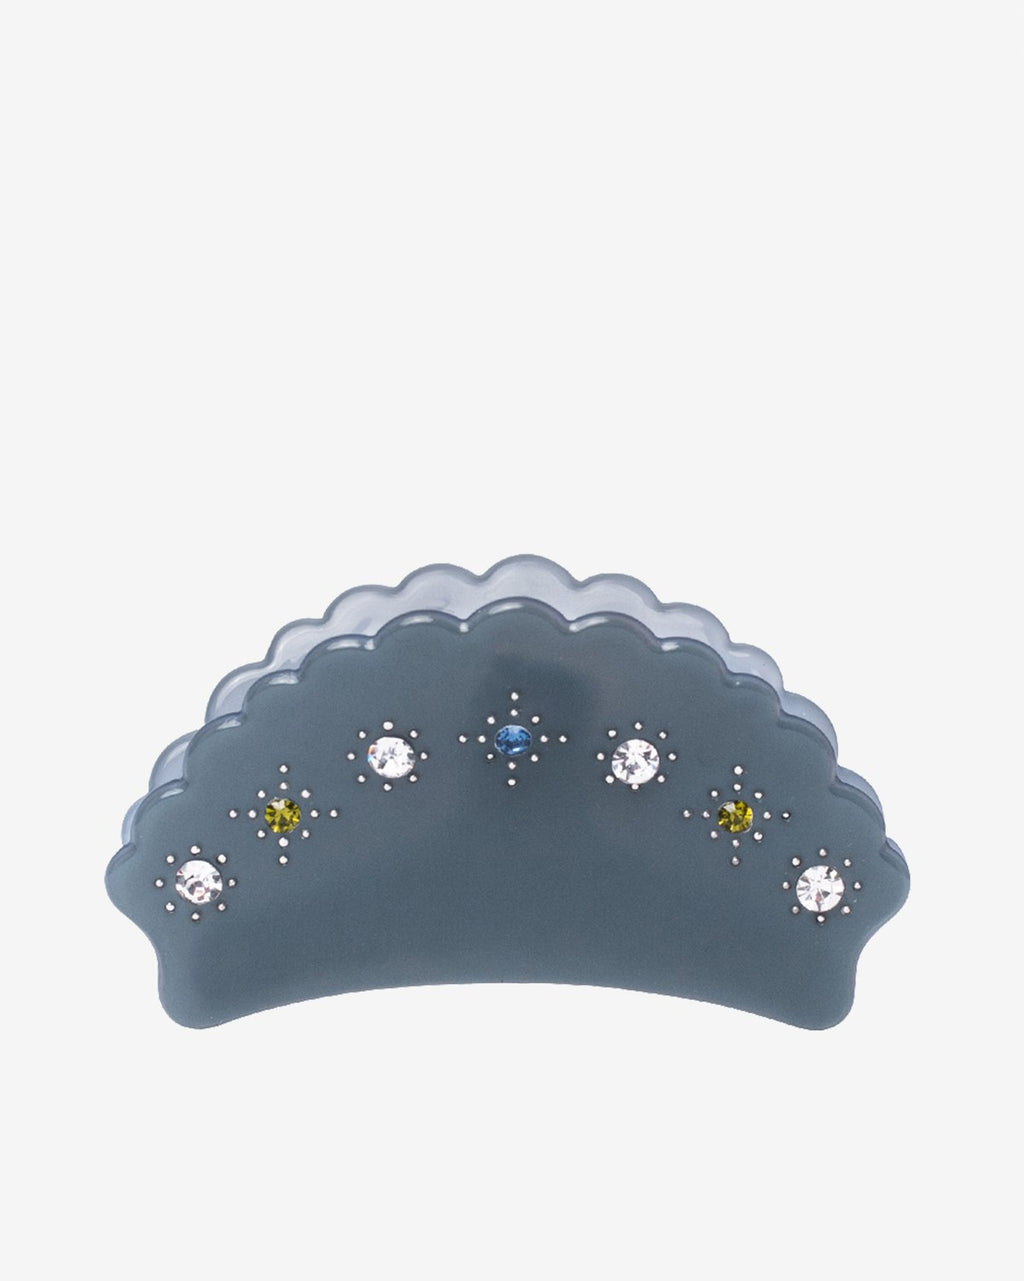 STAR CLOUD HAIR CLIP